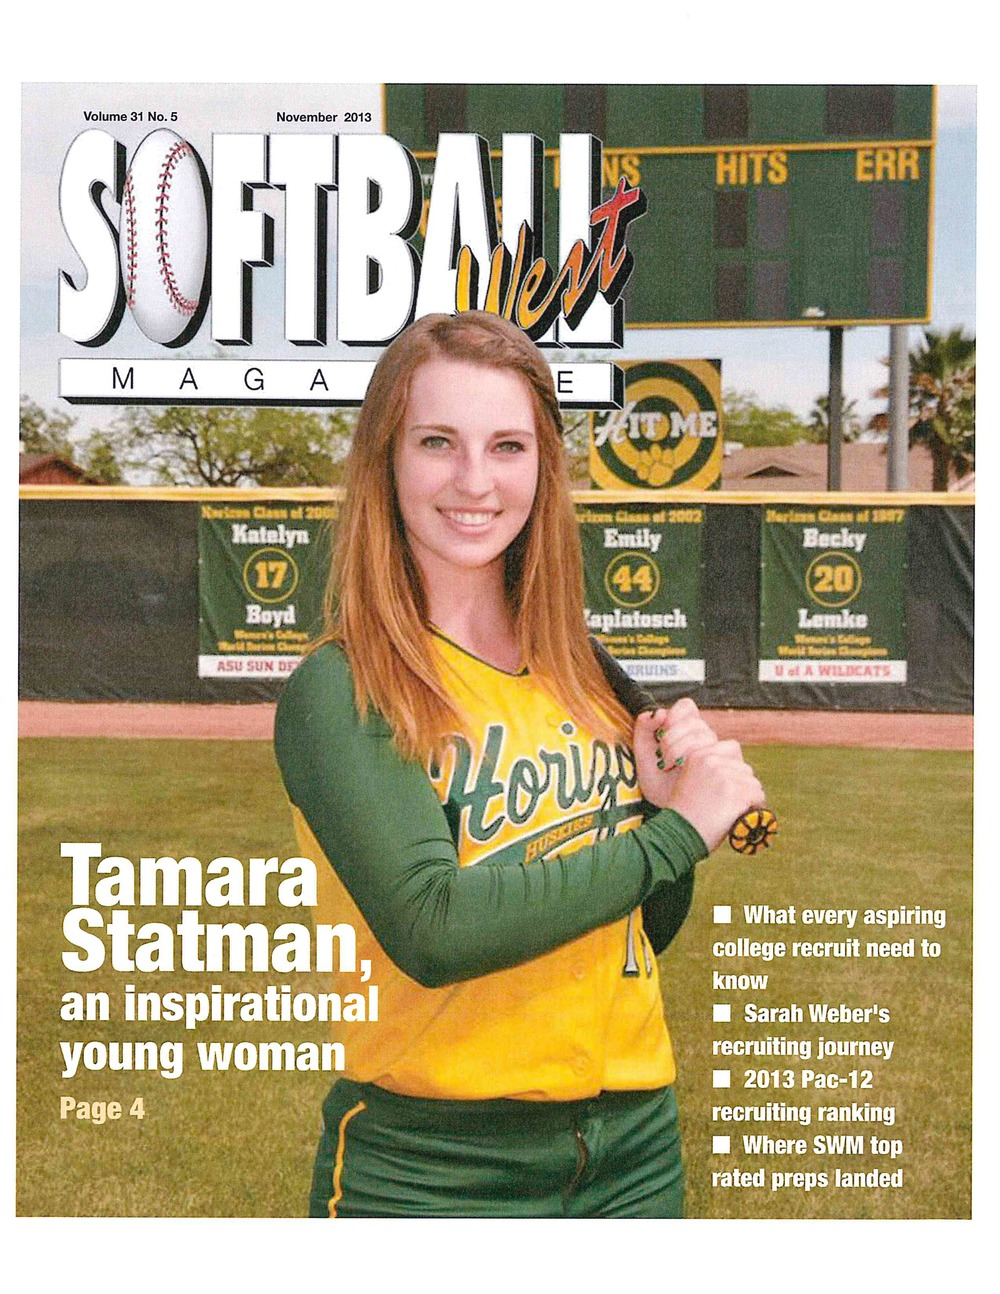 Tamara Statman on the cover of Softball West Magazine, November, 2013